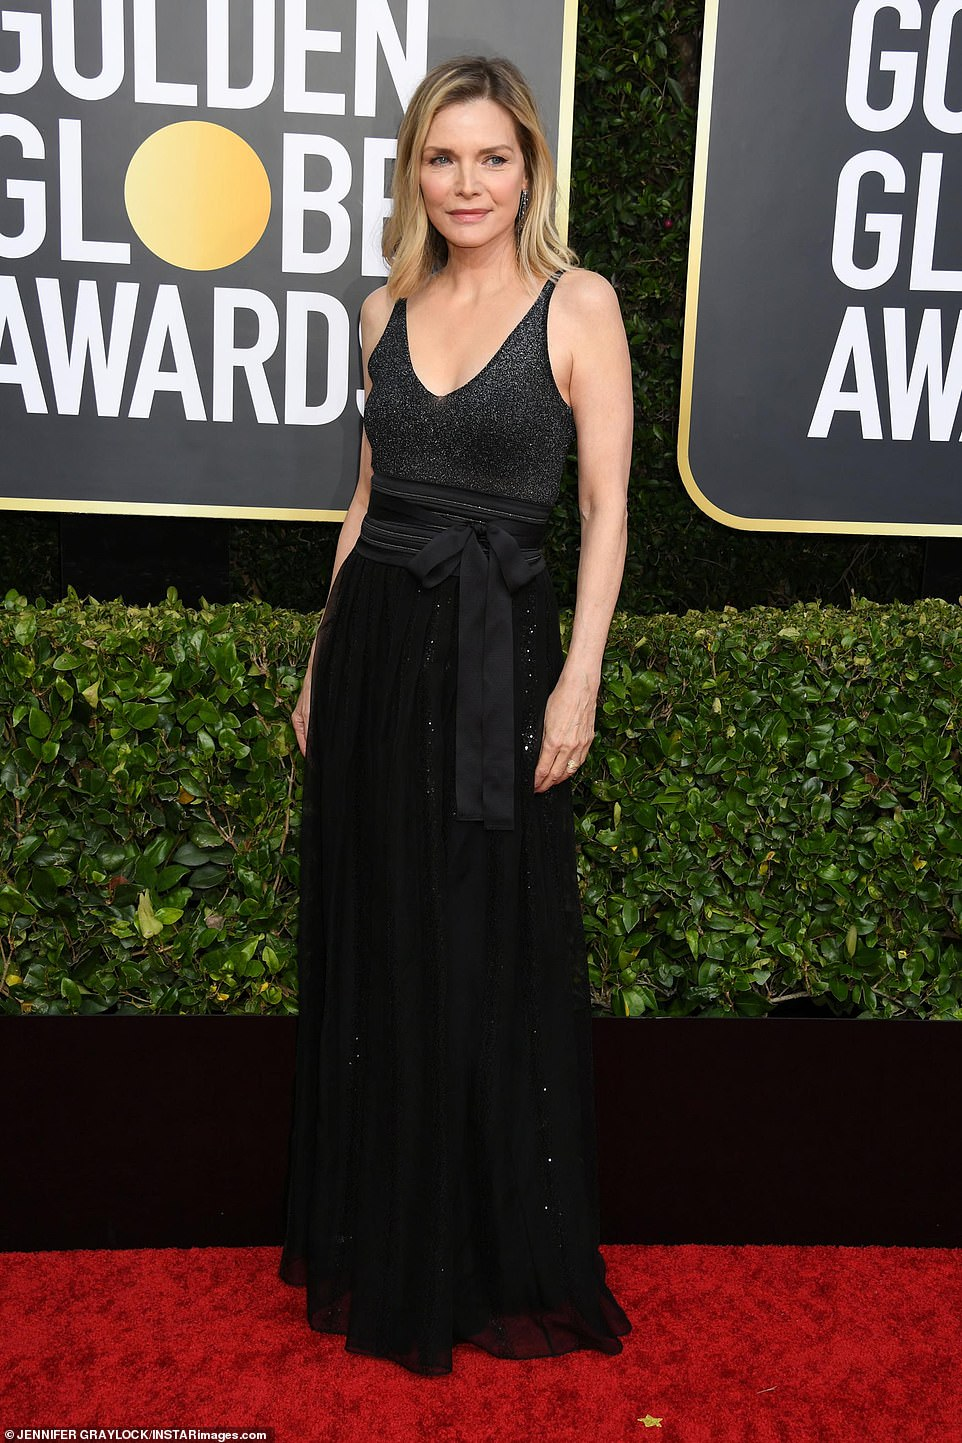 Red Carpet bling Michelle Pfeifer Wears A Black Glittering Top with Sequined Skirt Gown